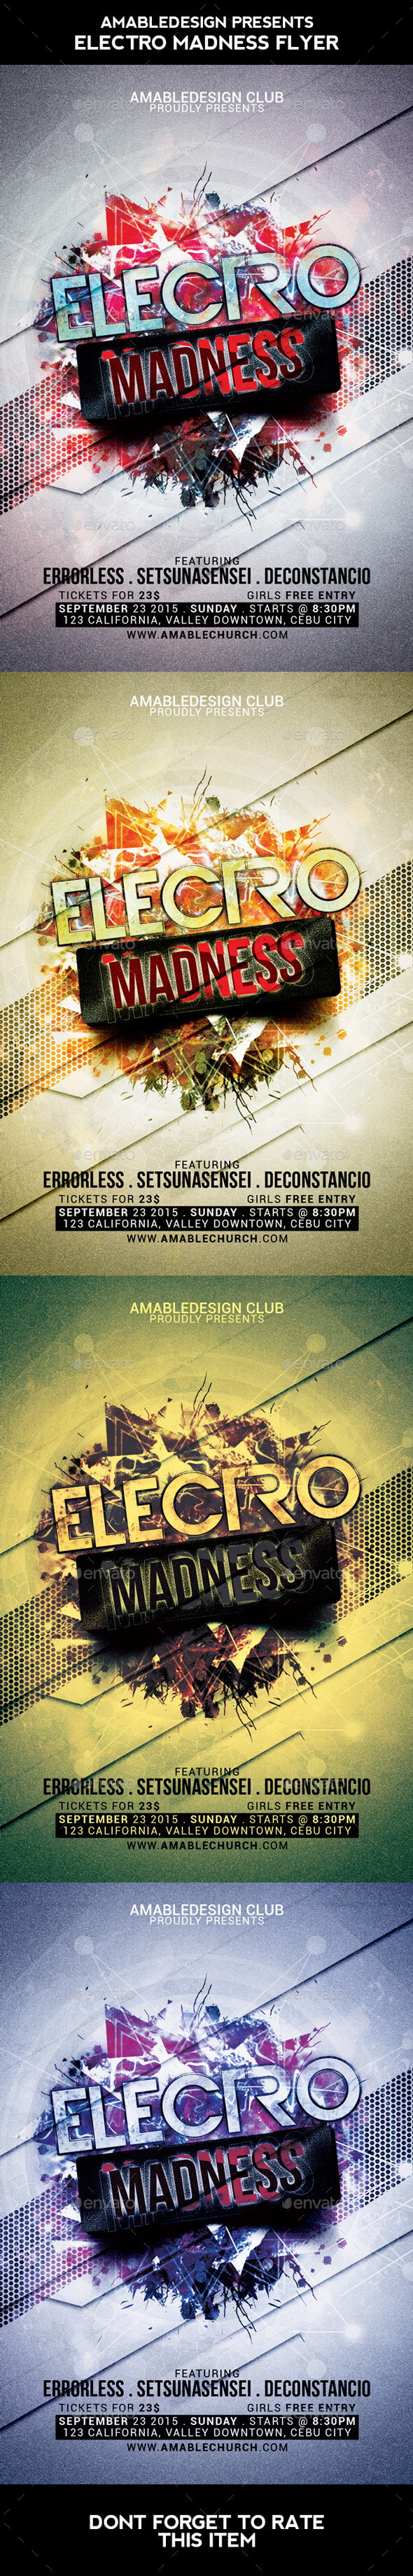 Electro Madness Flyer